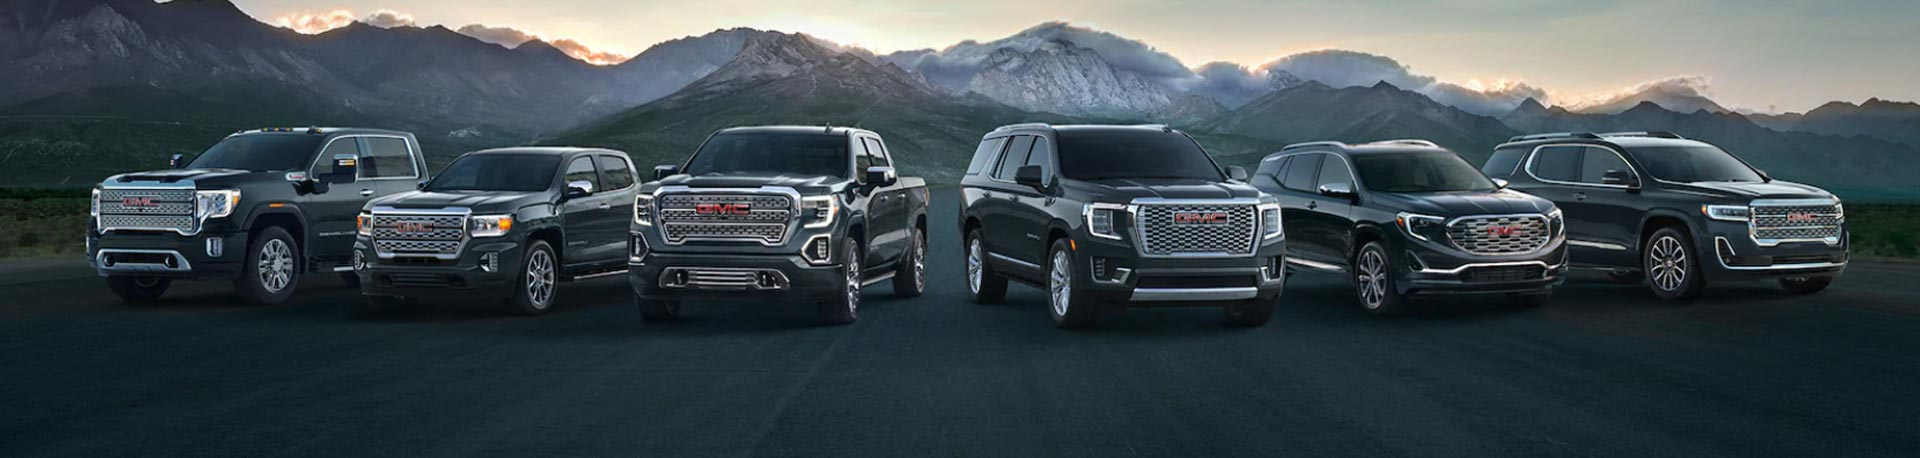 About Our Beamn Buick GMC Dealership in Nashville, TN